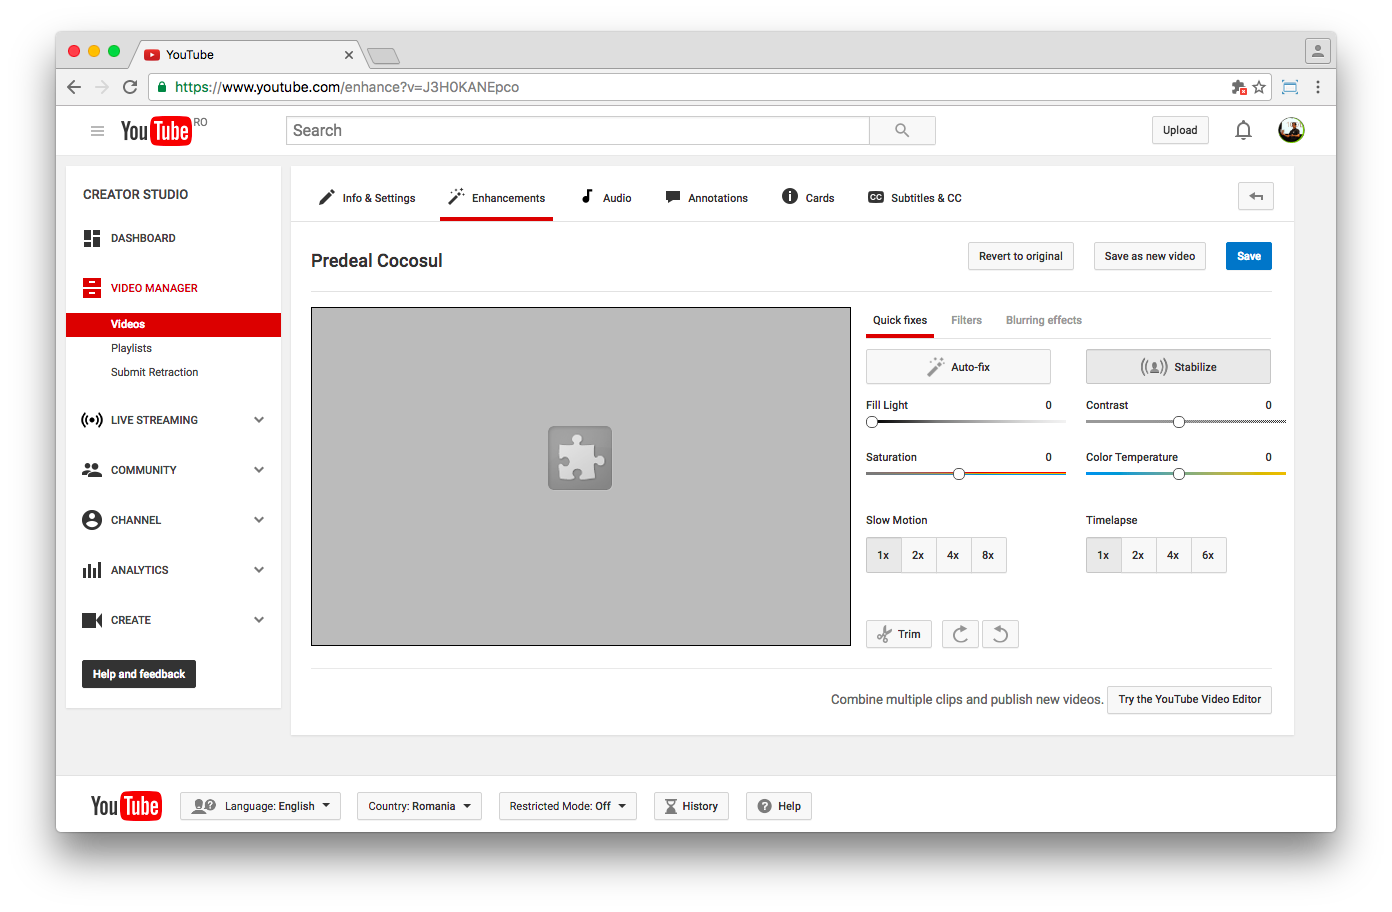 YouTube's Video editor uses Flash